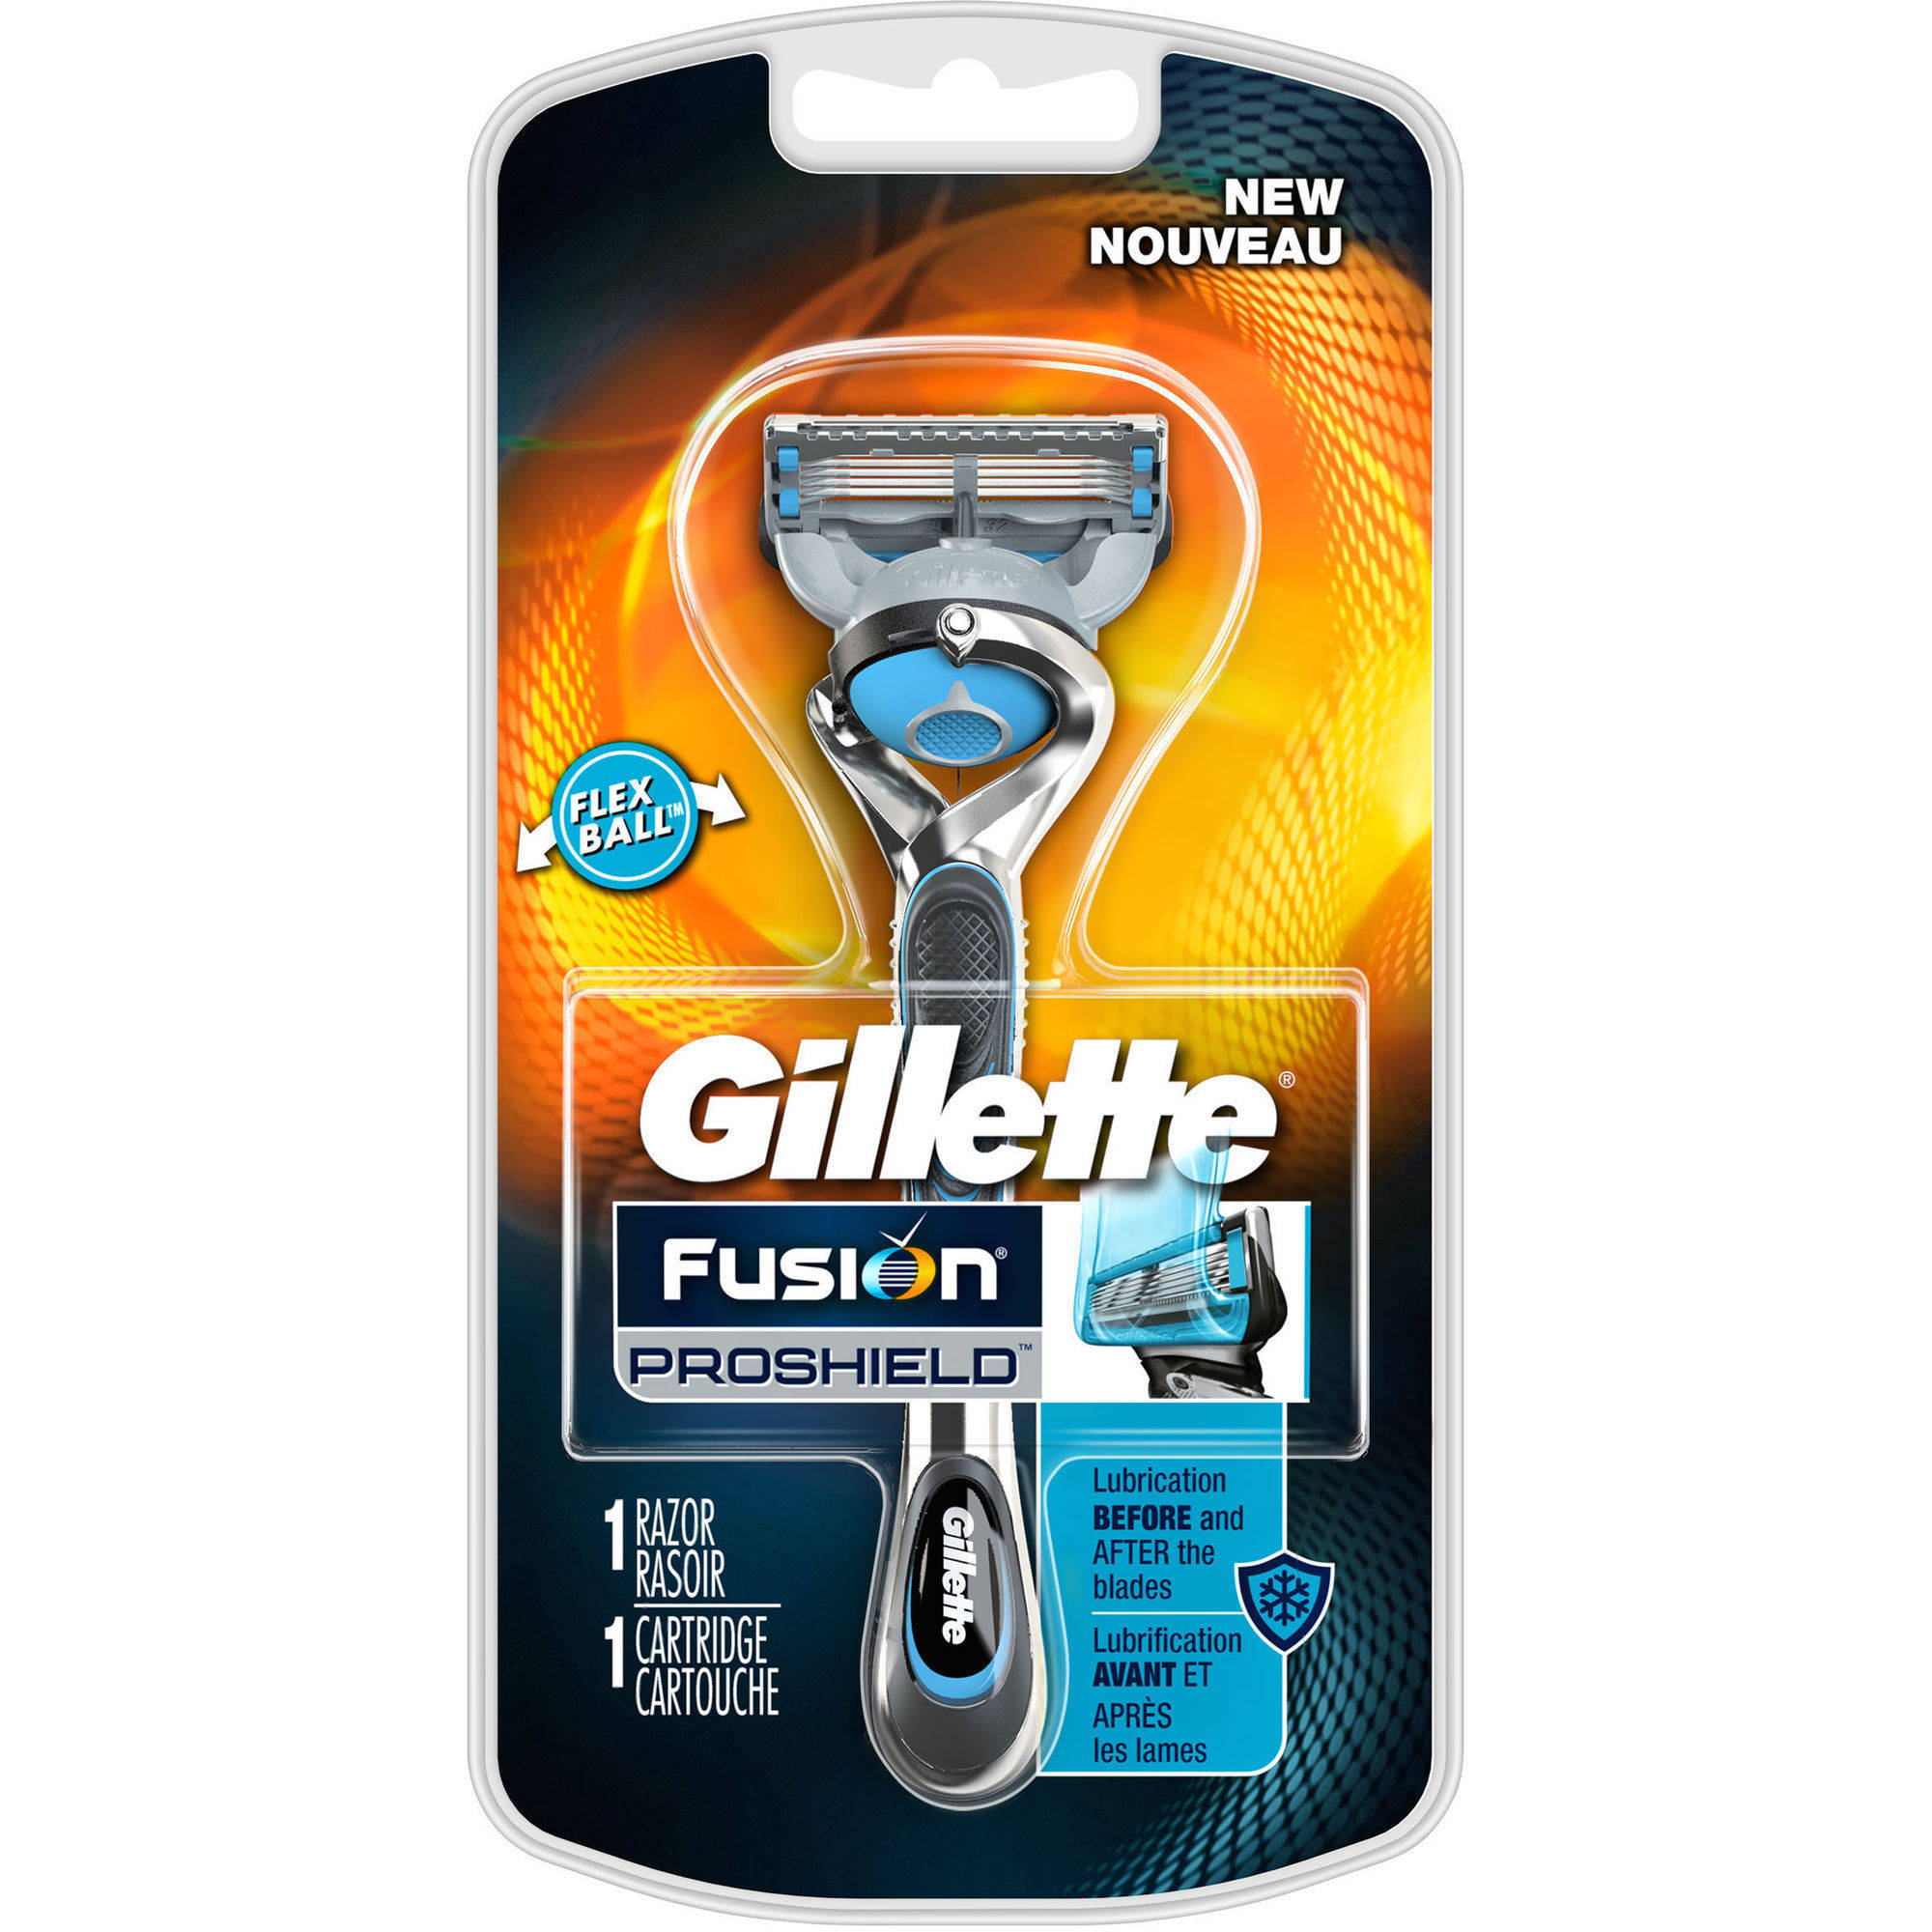 Gillette Fusion ProShield Chill Men's Razor with Blade Refill, 2 pc